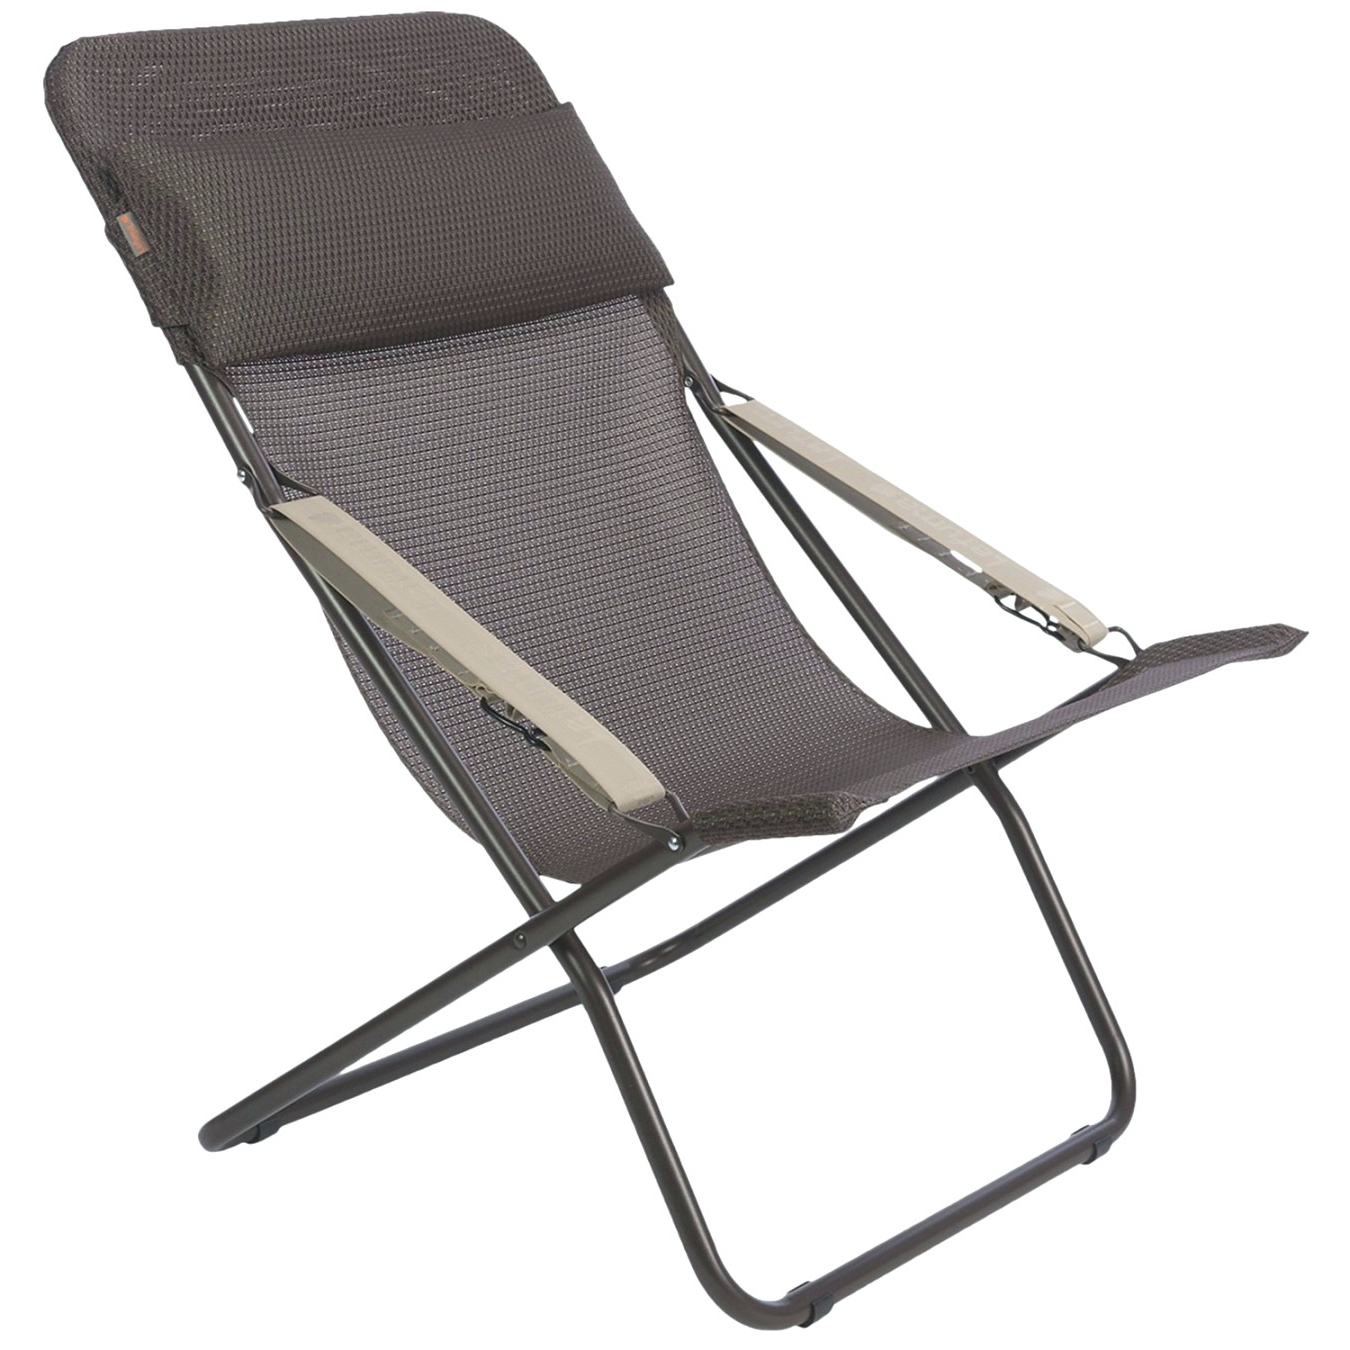 Portable Chair Folding Outdoor Chaise Lounge • Lounge Chairs Ideas Regarding Well Known Portable Outdoor Chaise Lounge Chairs (View 4 of 15)